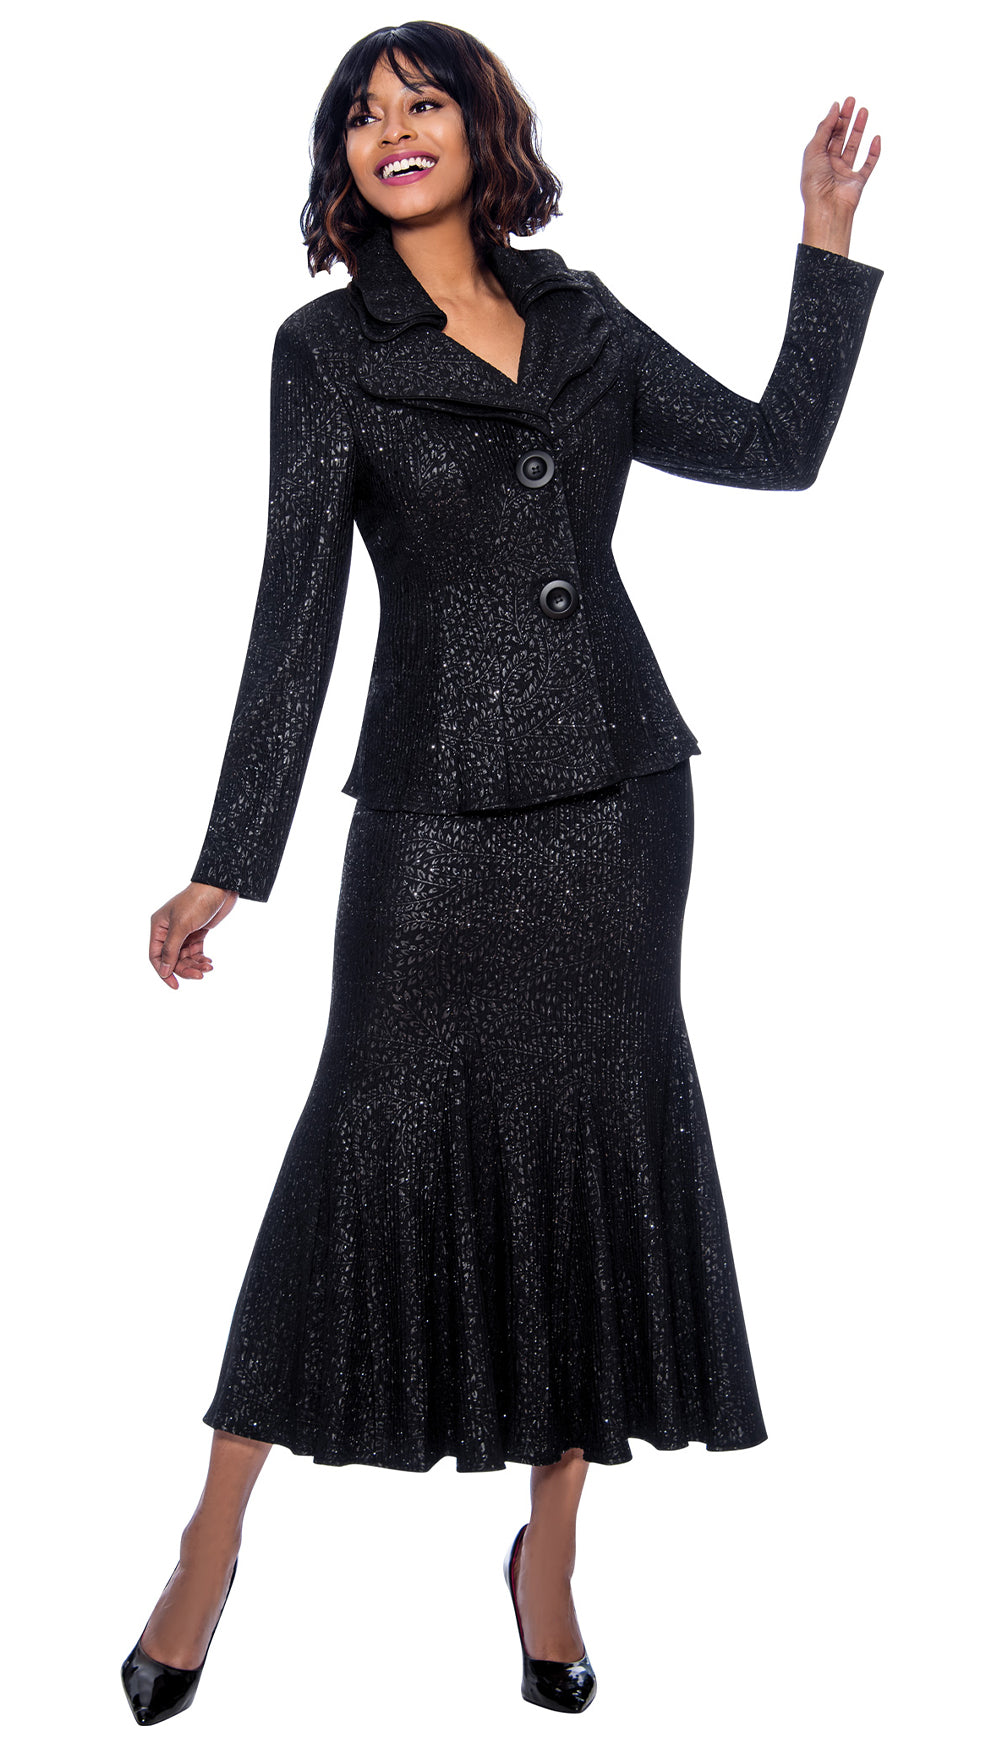 Terramina Suit 7656-Black - Church Suits For Less